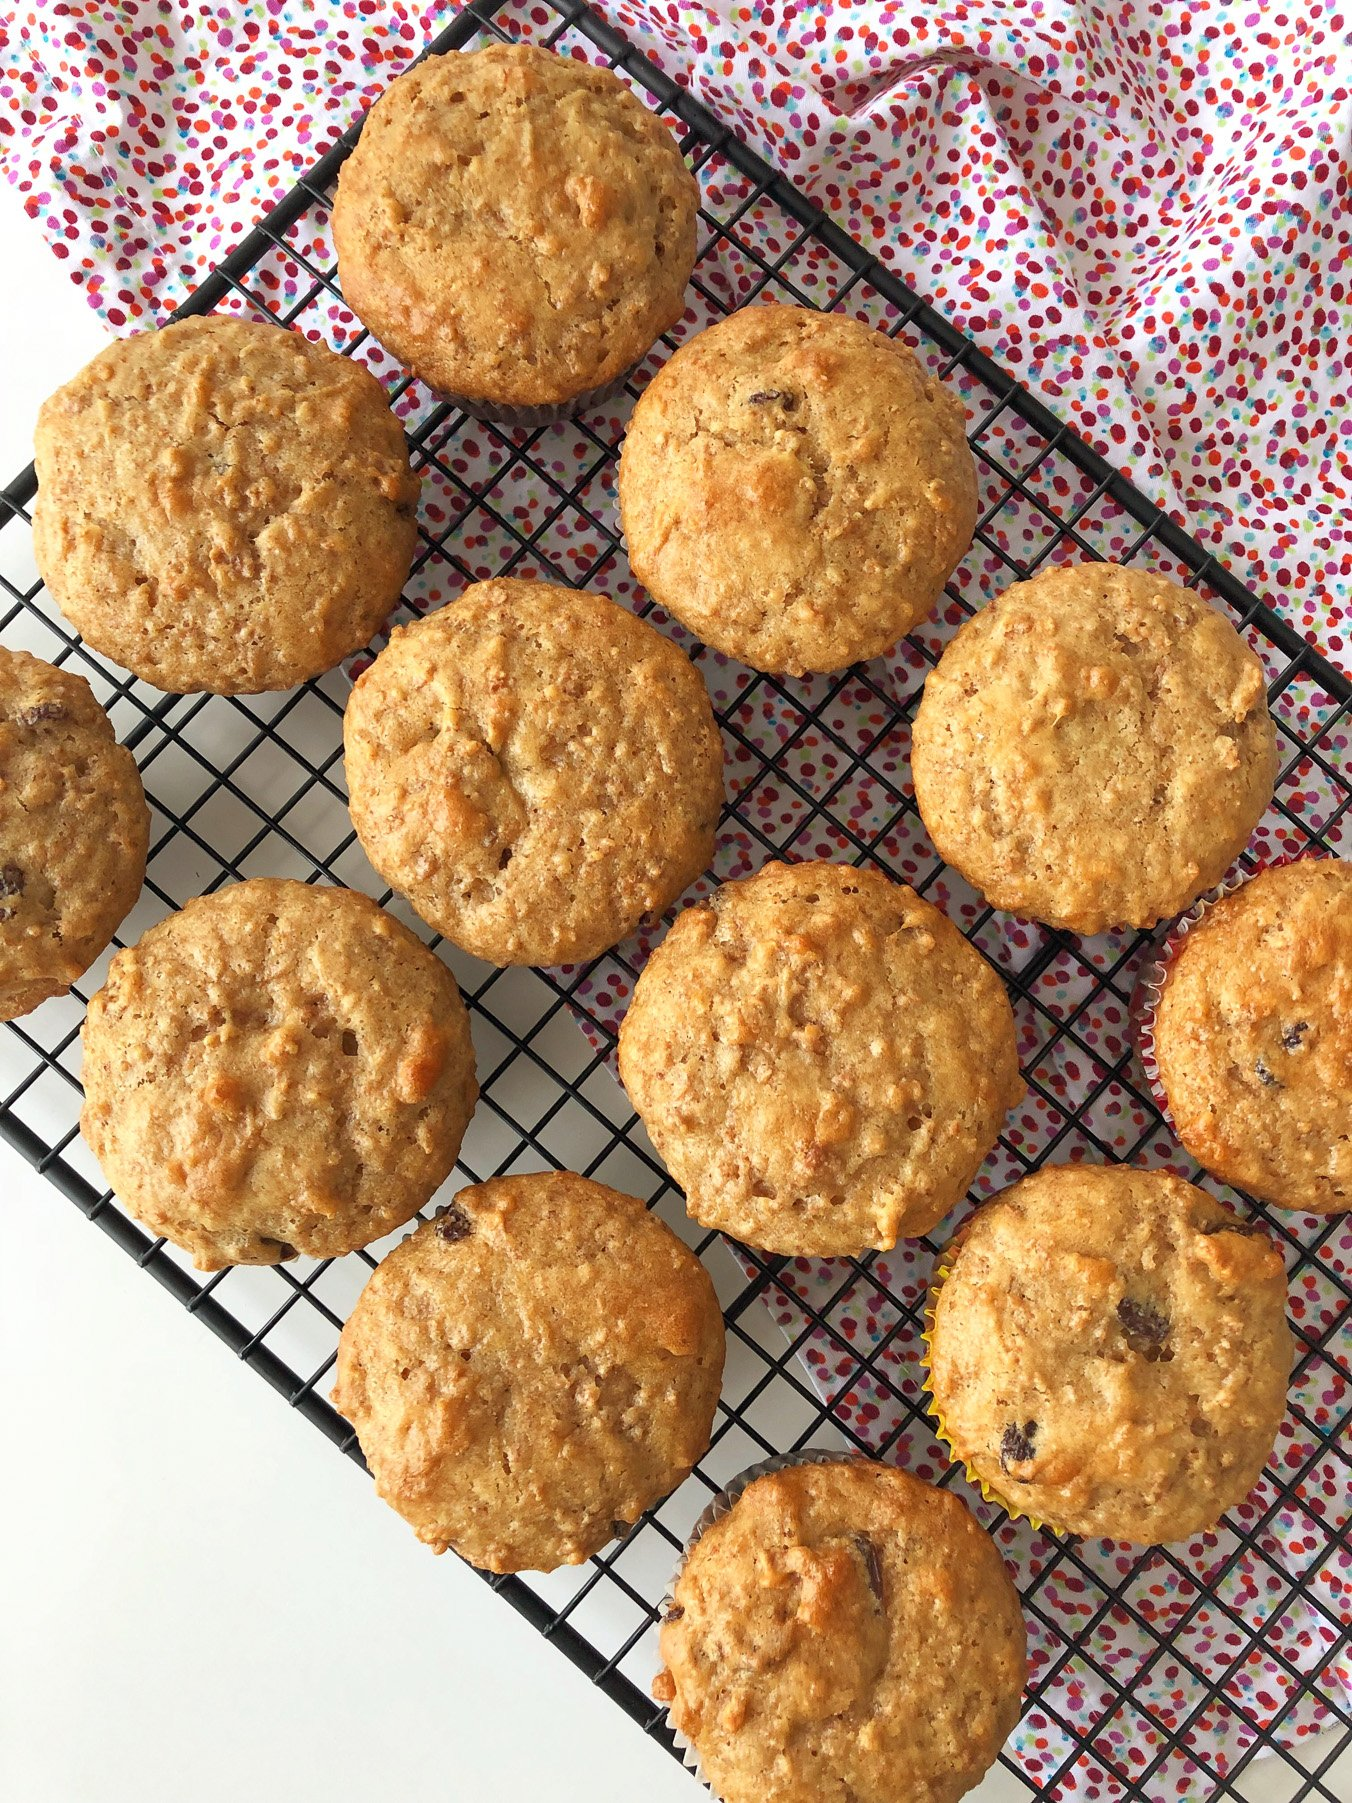 Pail Full of Bran Muffins (made with bran flakes cereal)